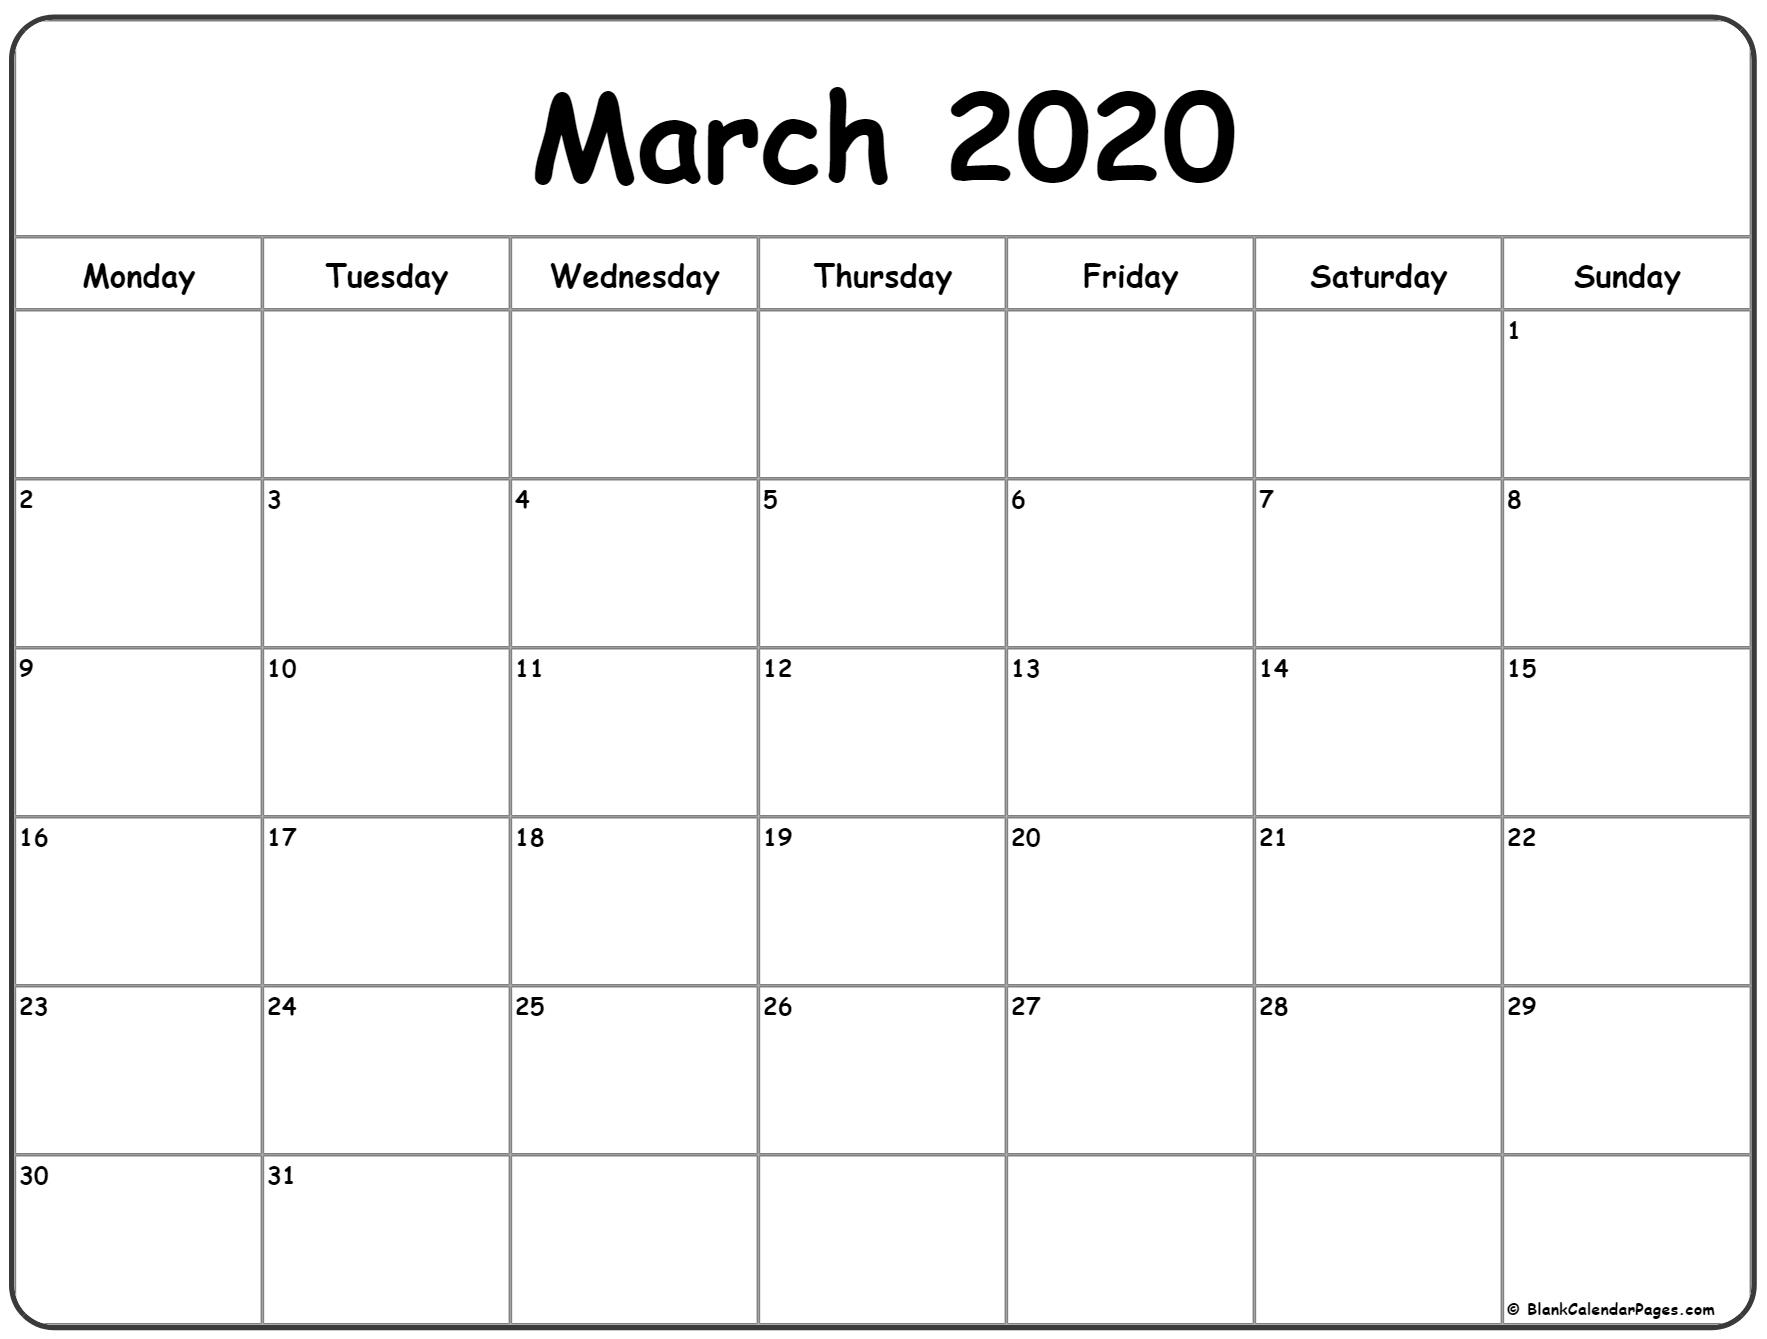 March 2020 Monday Calendar | Monday To Sunday intended for 2020 Calendar That Starts With Monday